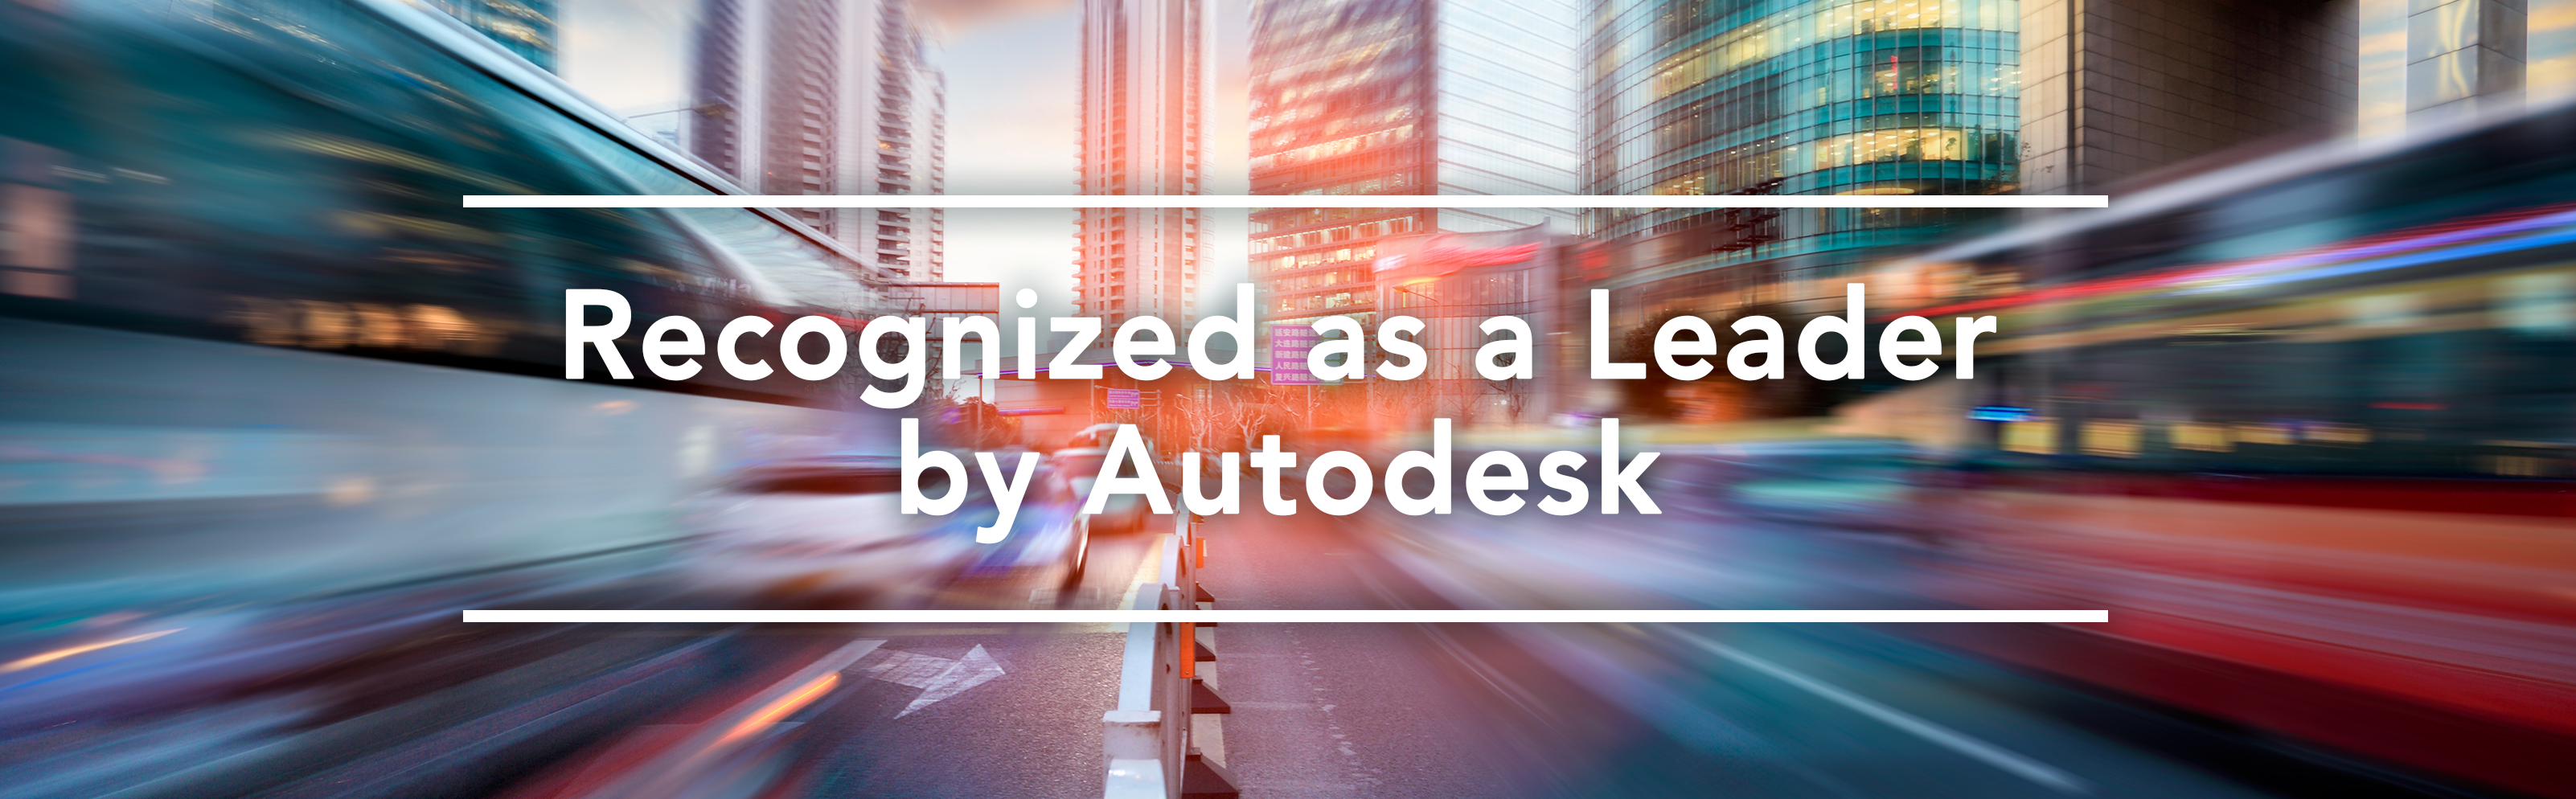 Recognized as a Leader by Autodesk